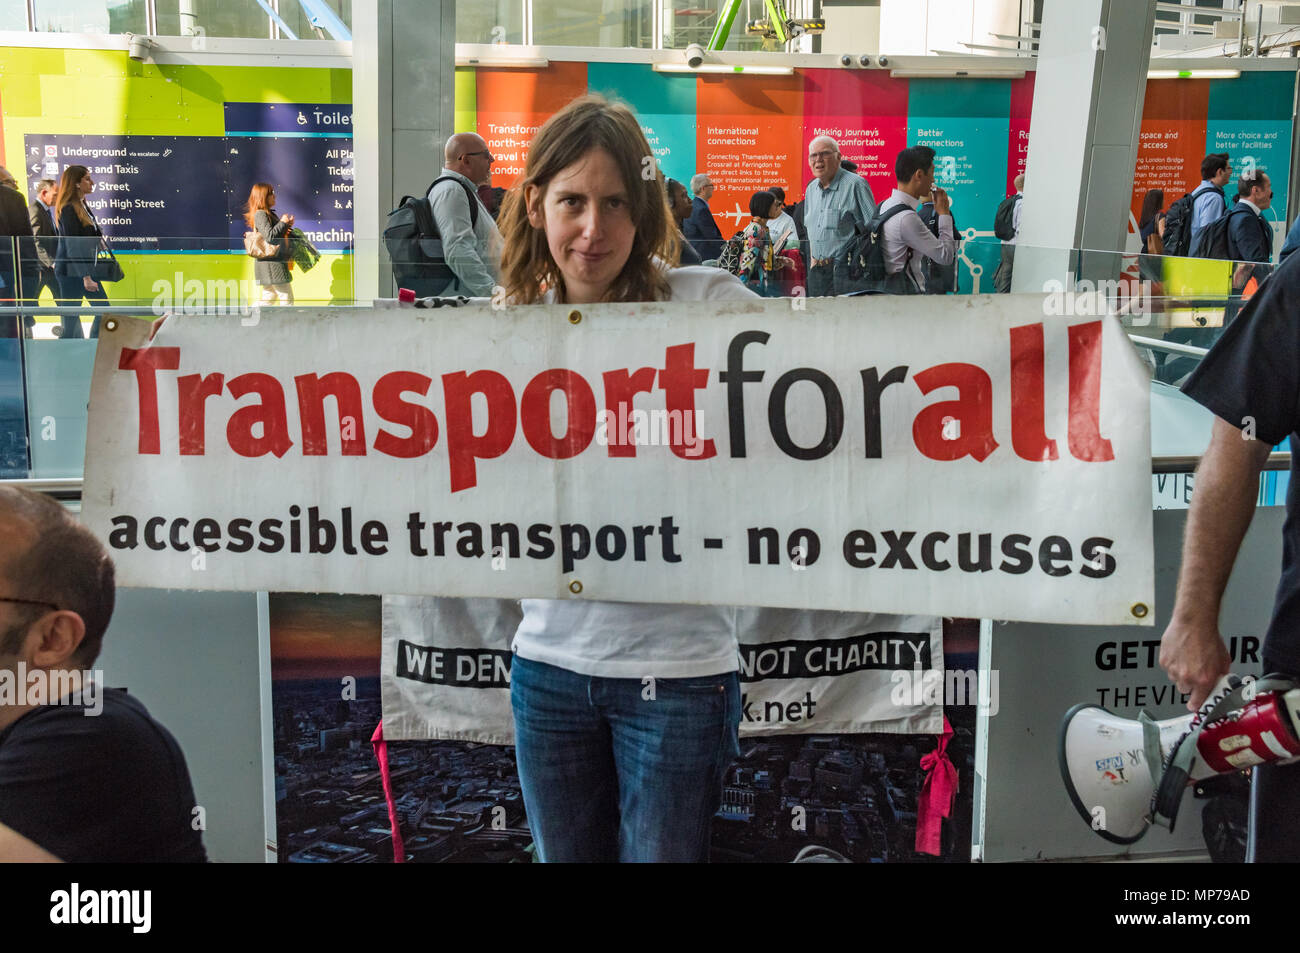 London, UK. 21st May 2018. A protester holds a banner 'Transport for all - accessible transport - no excuses' in a 'People's Picket' by disabled rail passengers from Disabled People Against Cuts along with the Association of British Commuters and RMT members outside London Bridge station. GTR uses a staff training guide in which they are dehumanised as 'PRM's  and staff are instructed to leave wheelchair users on the platform, even when they have arranged and pre-booked a journey. Credit: Peter Marshall/Alamy Live News - Stock Image